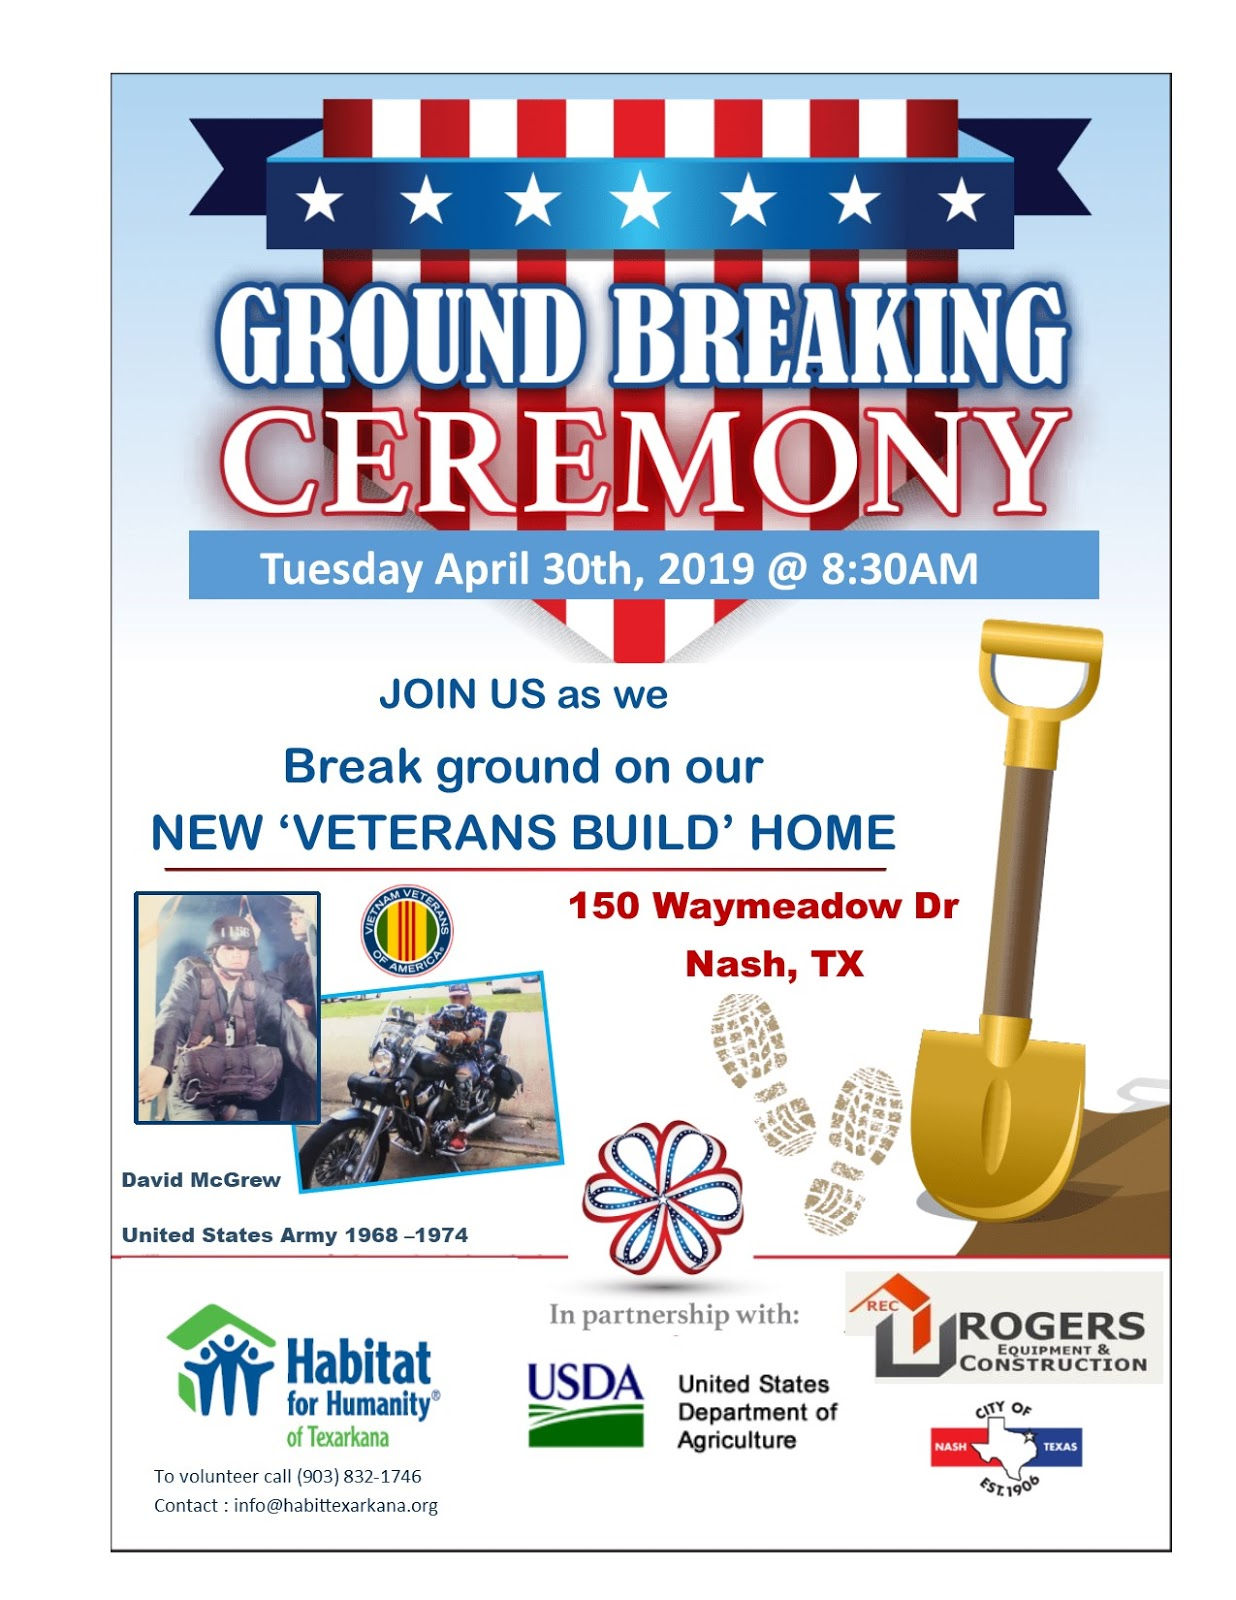 City of Nash celebrates groundbreaking of new home for local combat Vietnam veteran through partnership with USDA and Habitat for Humanity